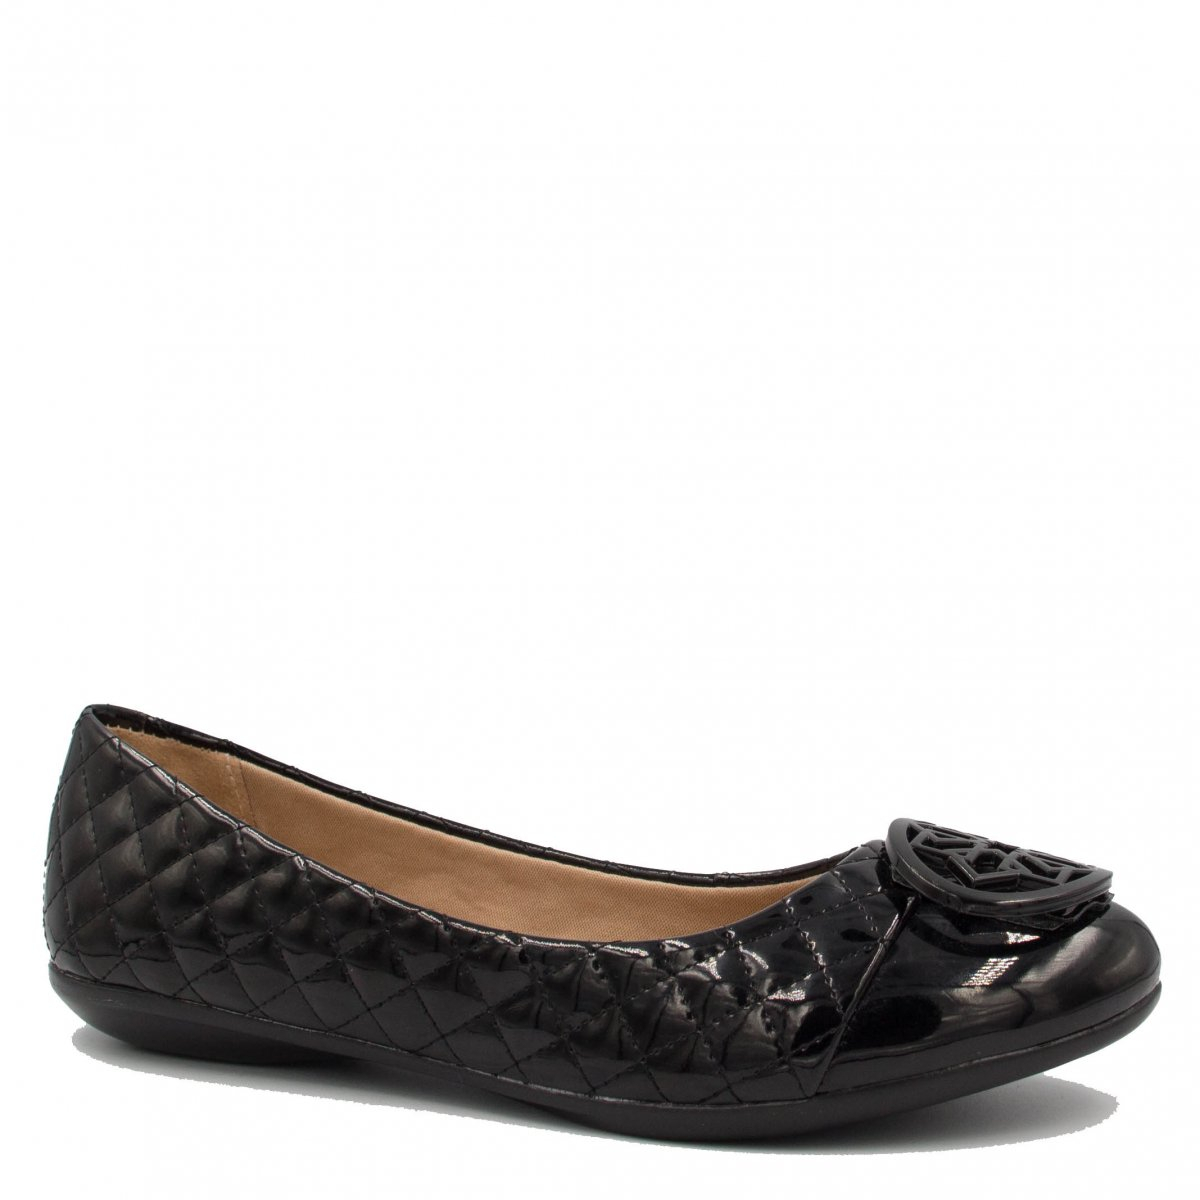 Sapatilha Zariff Shoes Cap Toe Verniz Preto